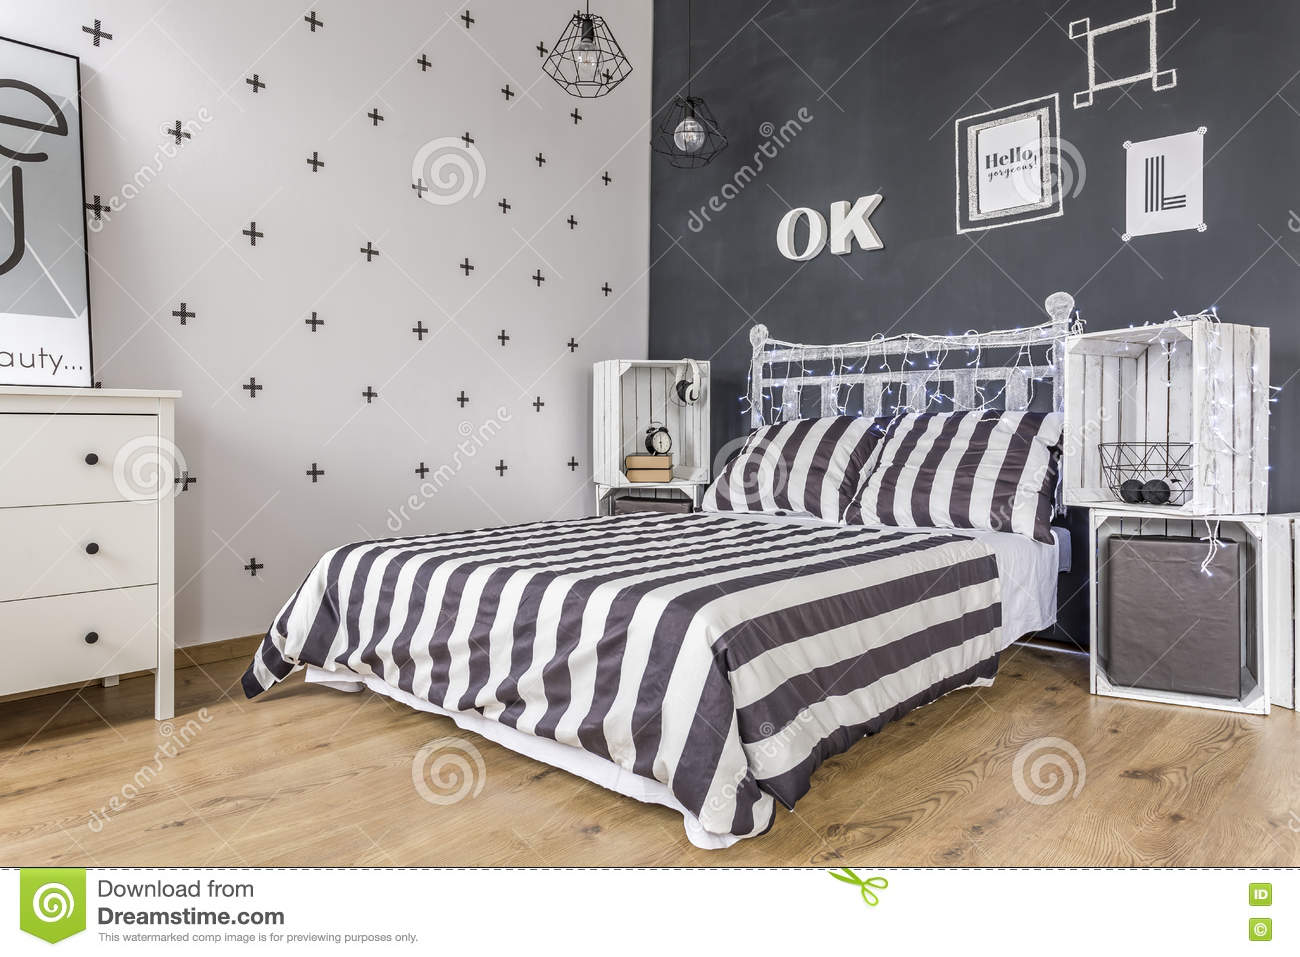 Black And White Bedroom Idea Stock Image Image Of Relax Room